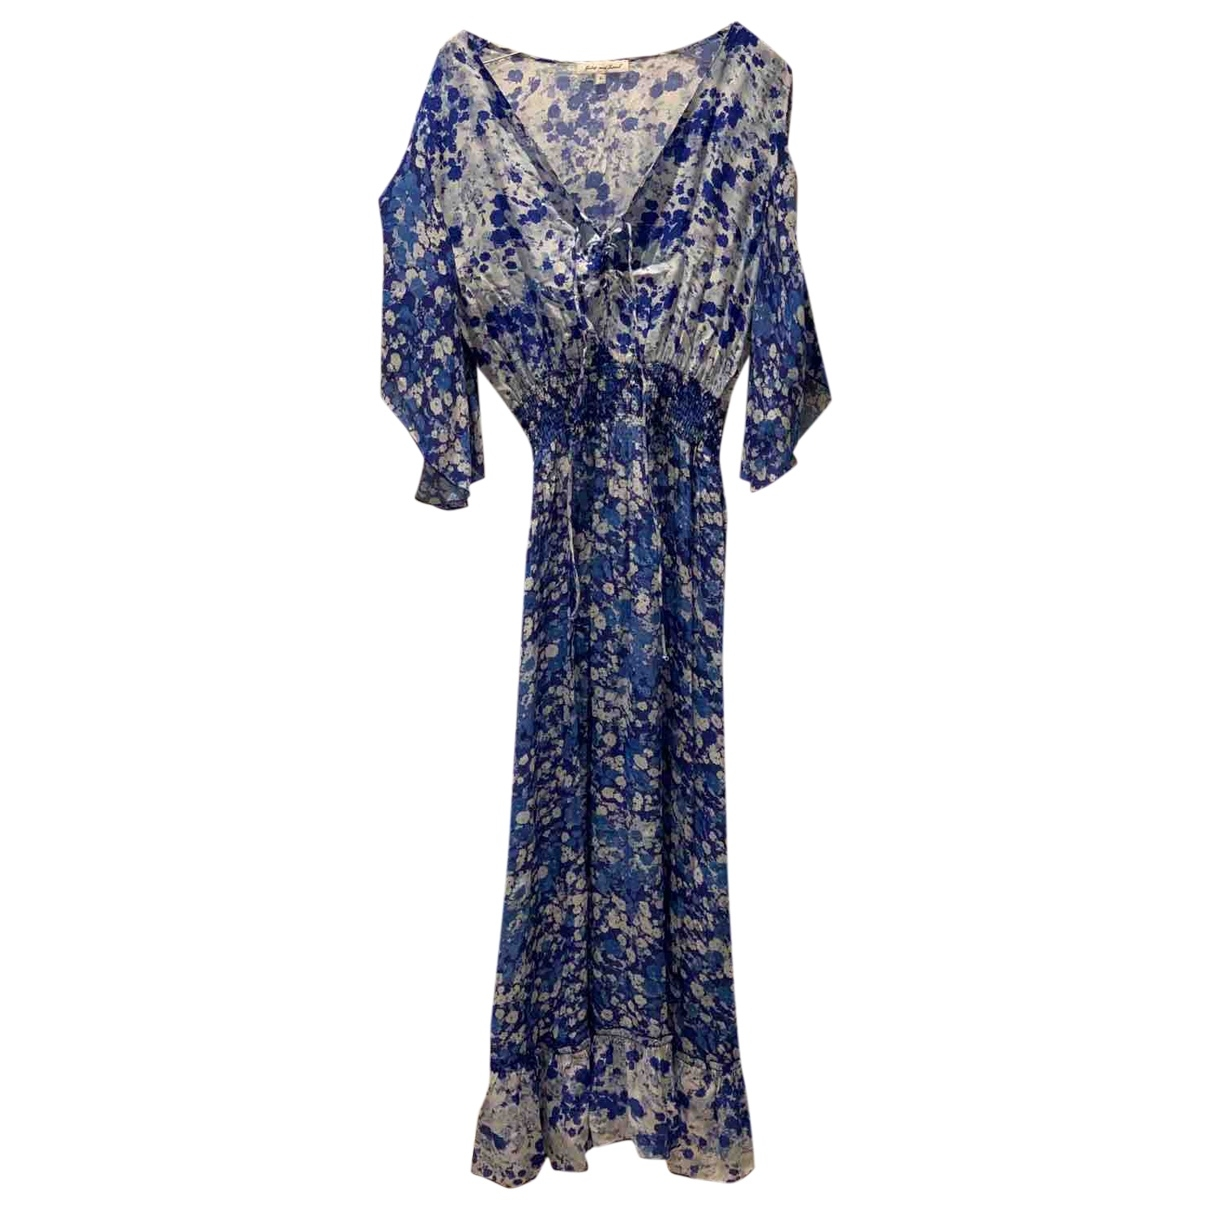 Lily And Lionel \N Blue dress for Women XS International